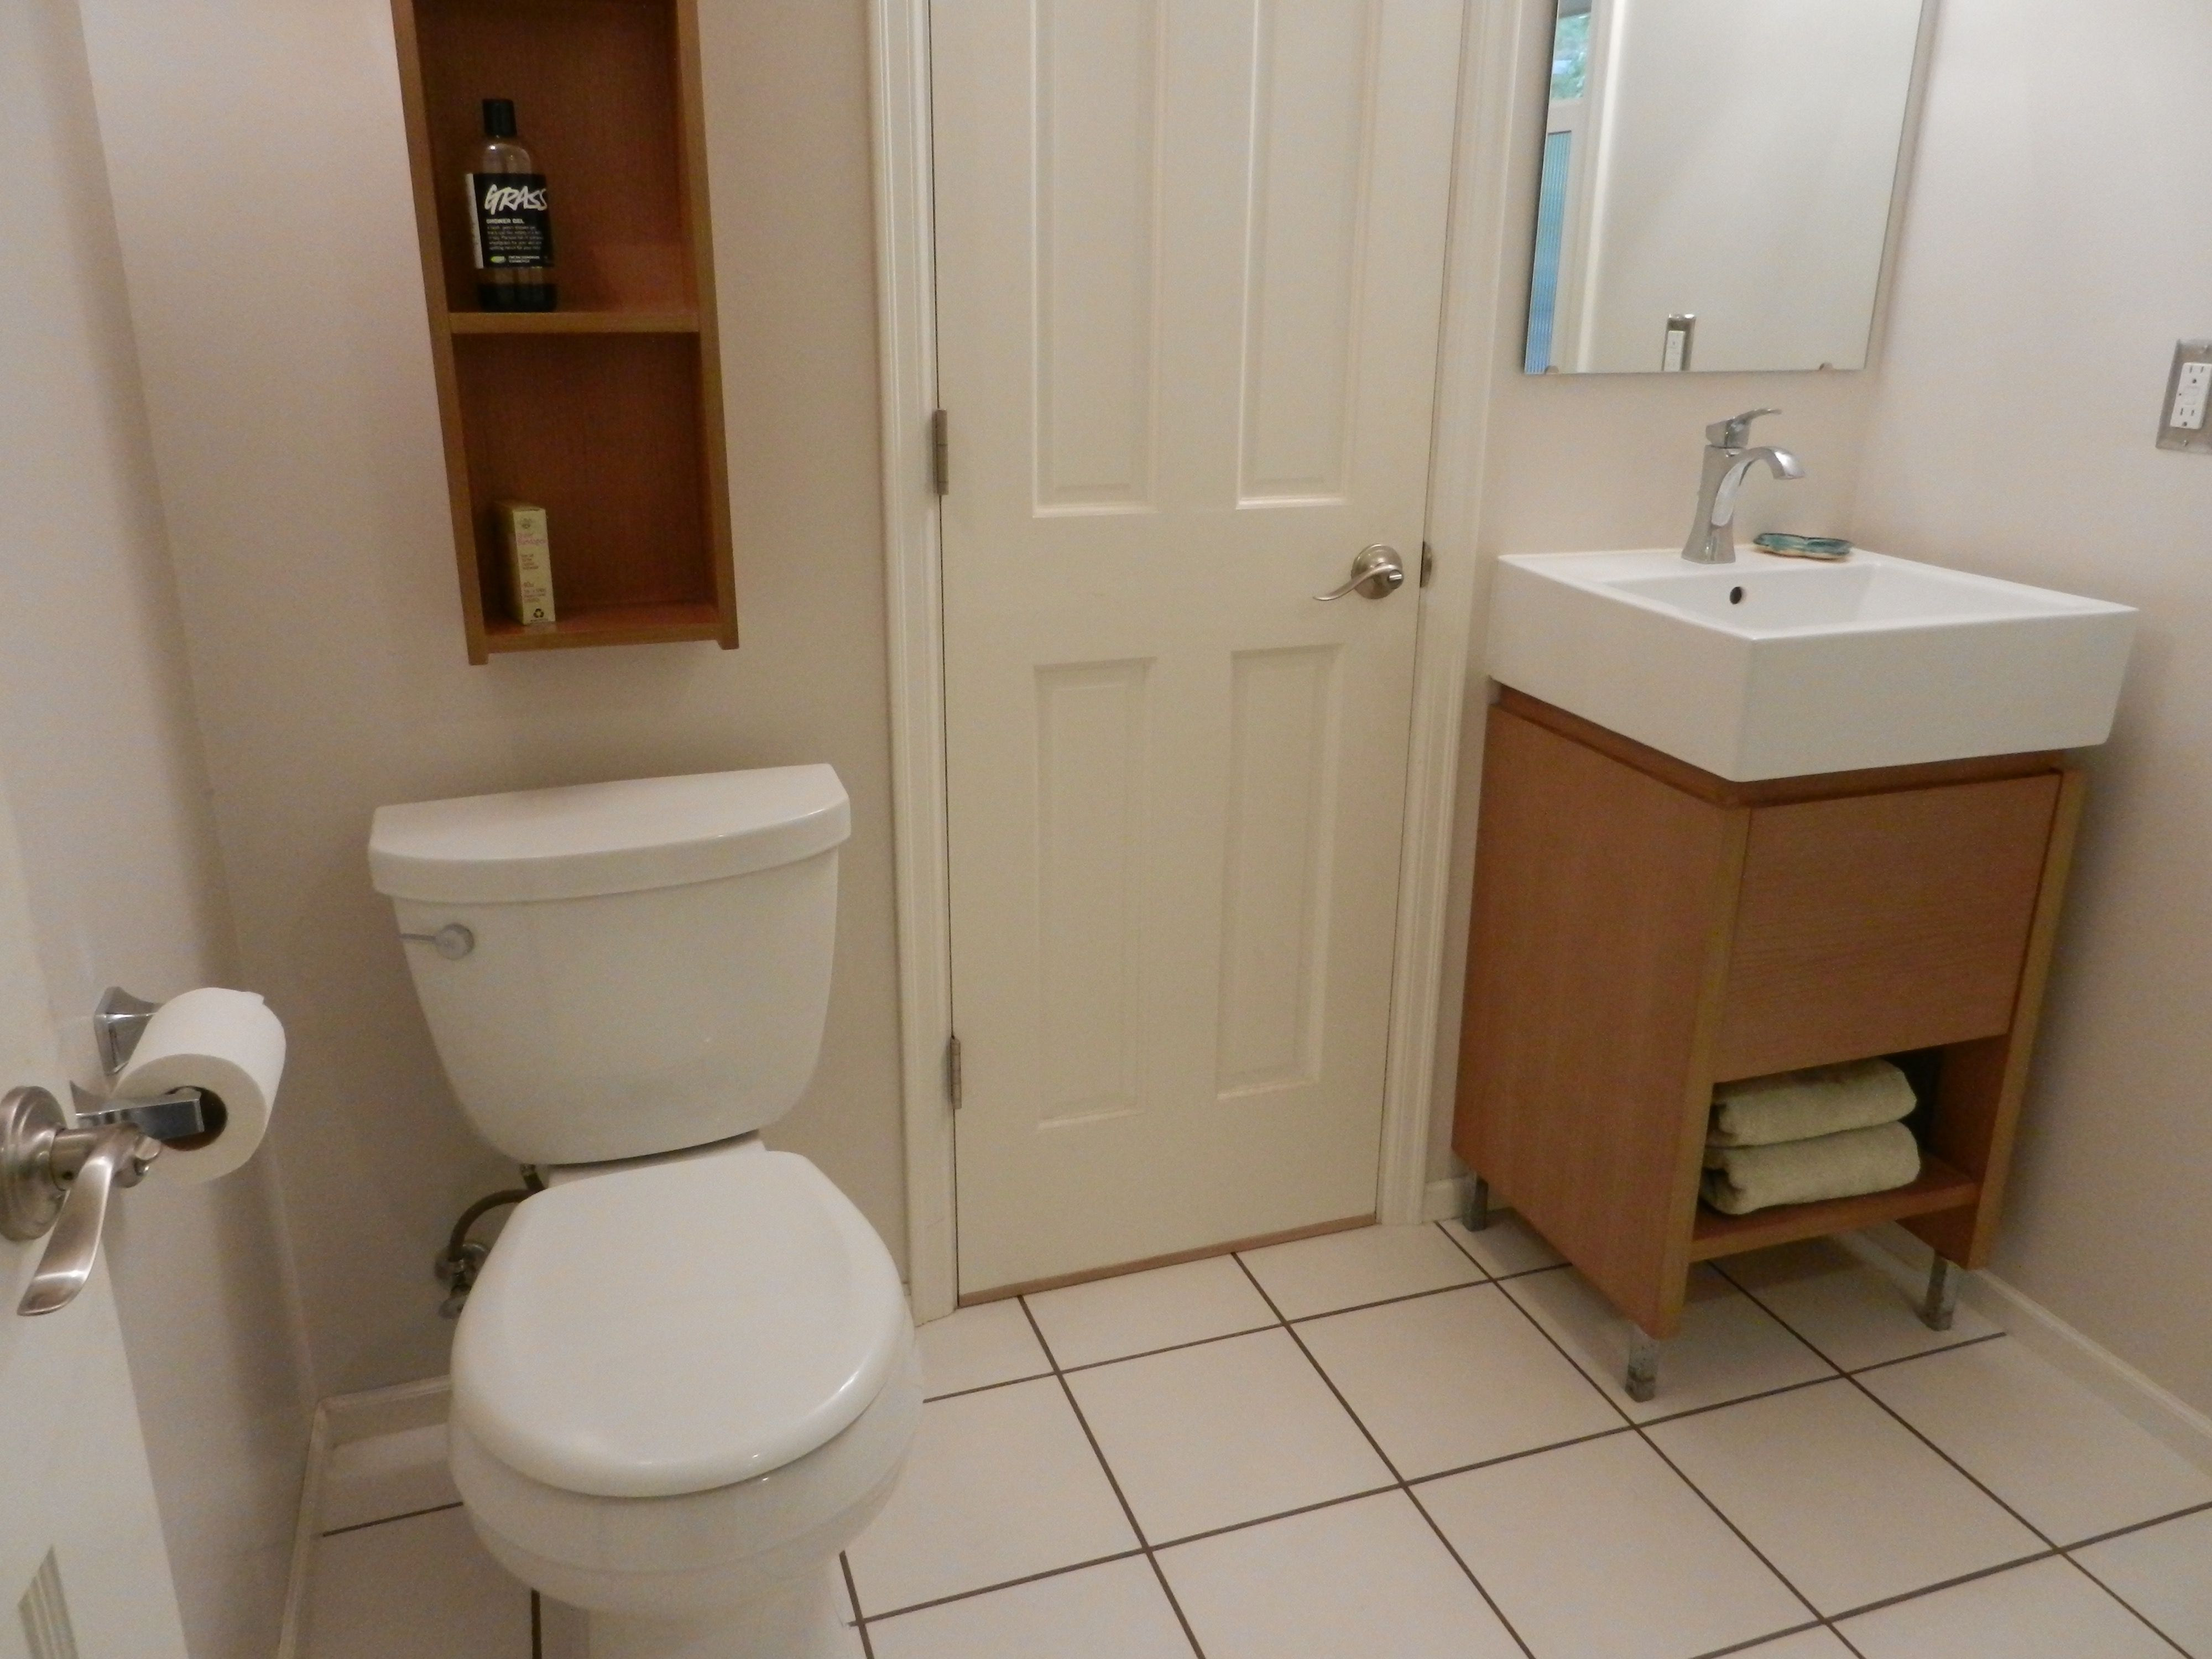 Bathroom Fixtures Eugene Oregon bathroom remodel with an amazing two person shower. castile